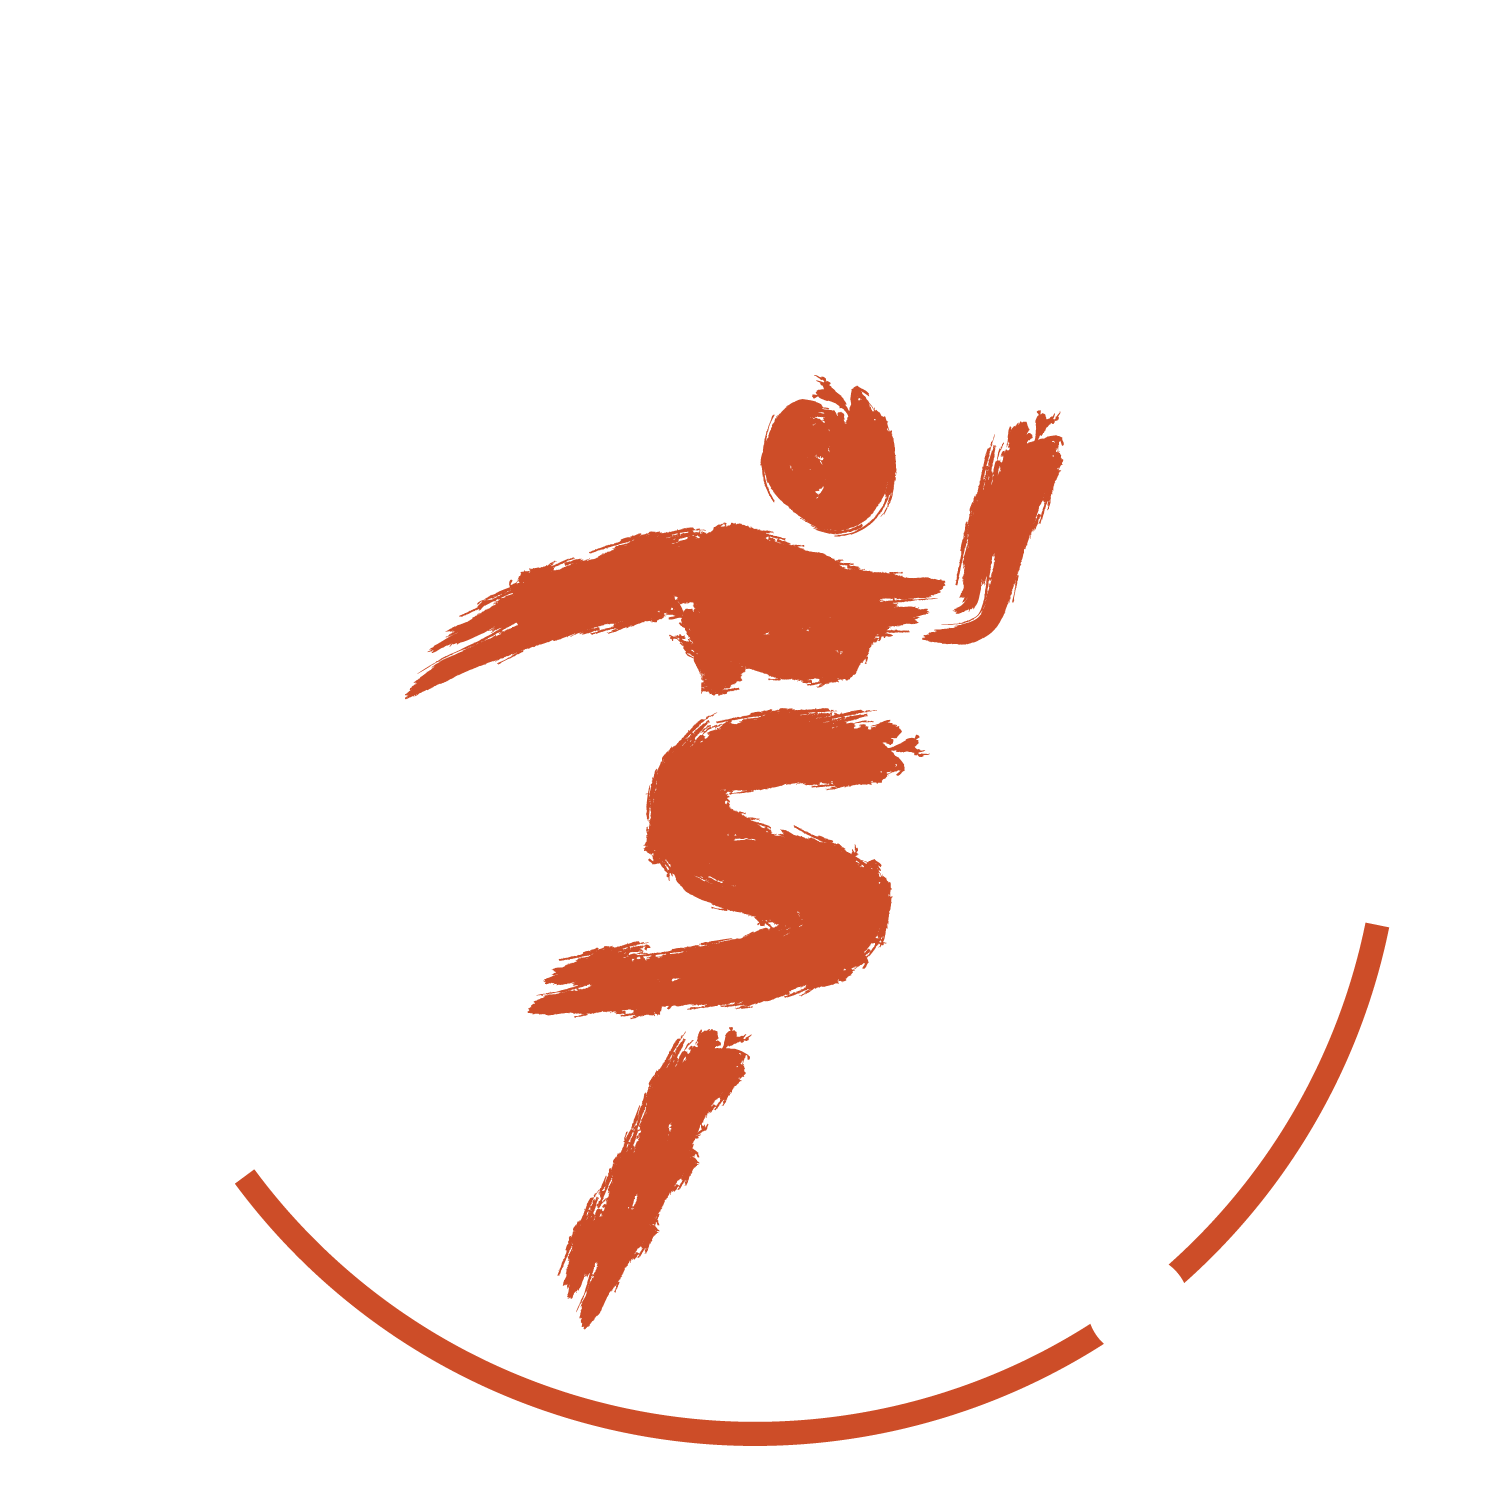 Sovereign Coaching Institute